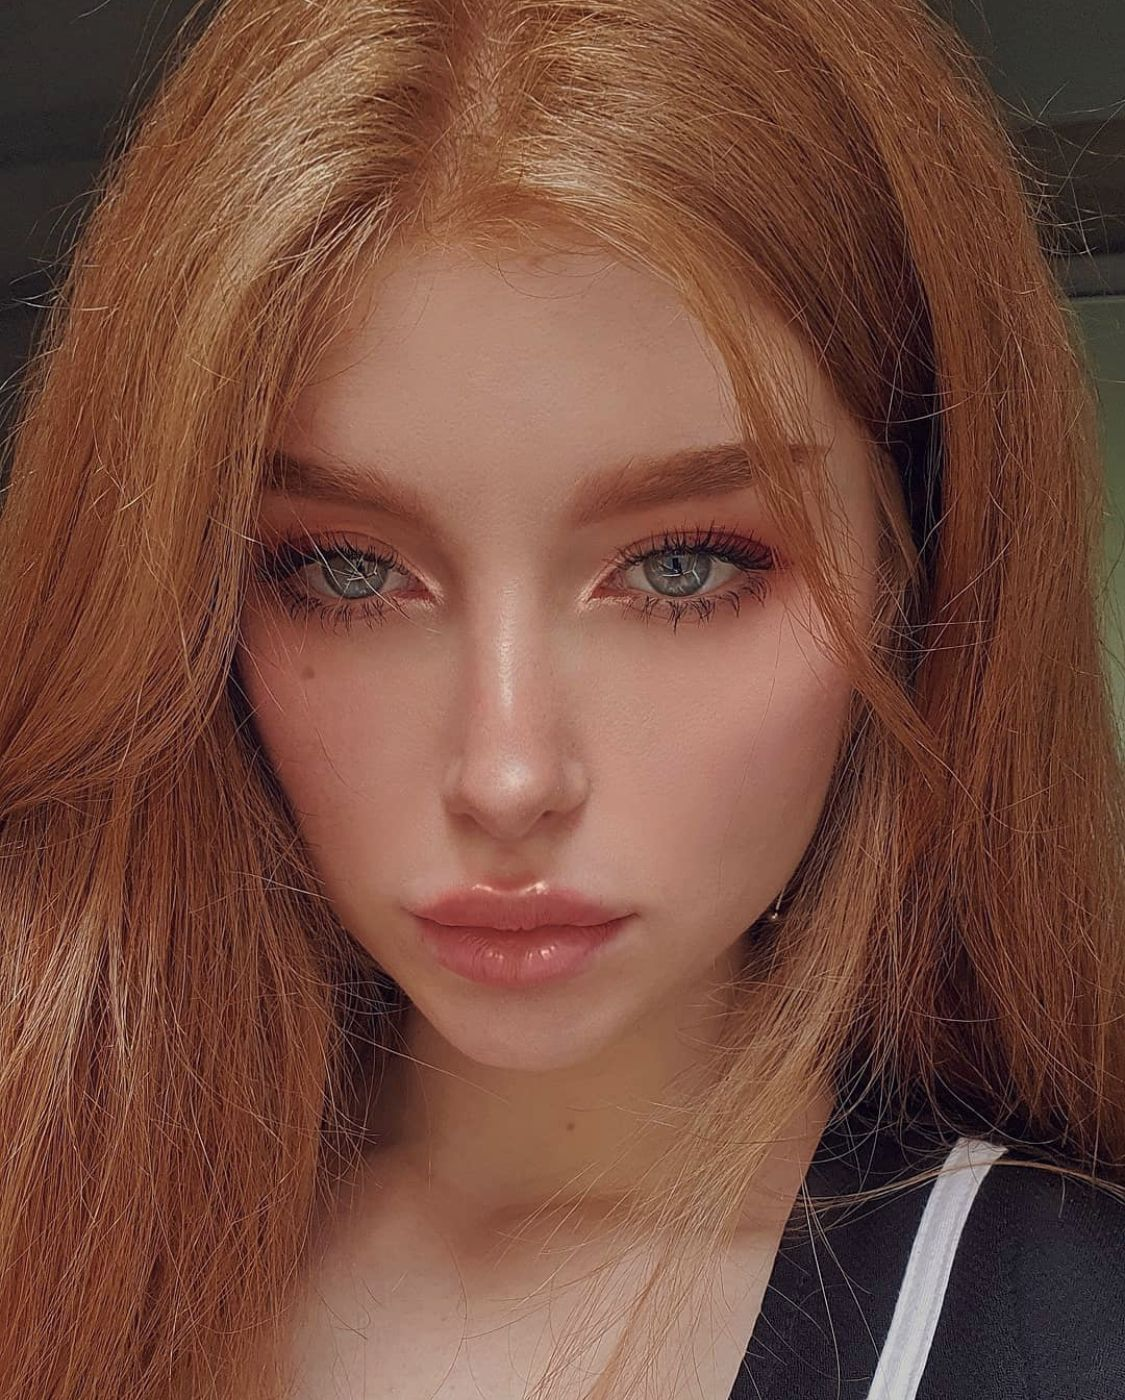 Pinterest • 𝑨𝒊𝒎𝔰𝒕𝒚𝒍𝒆 in 2020 Red haired beauty, Hair